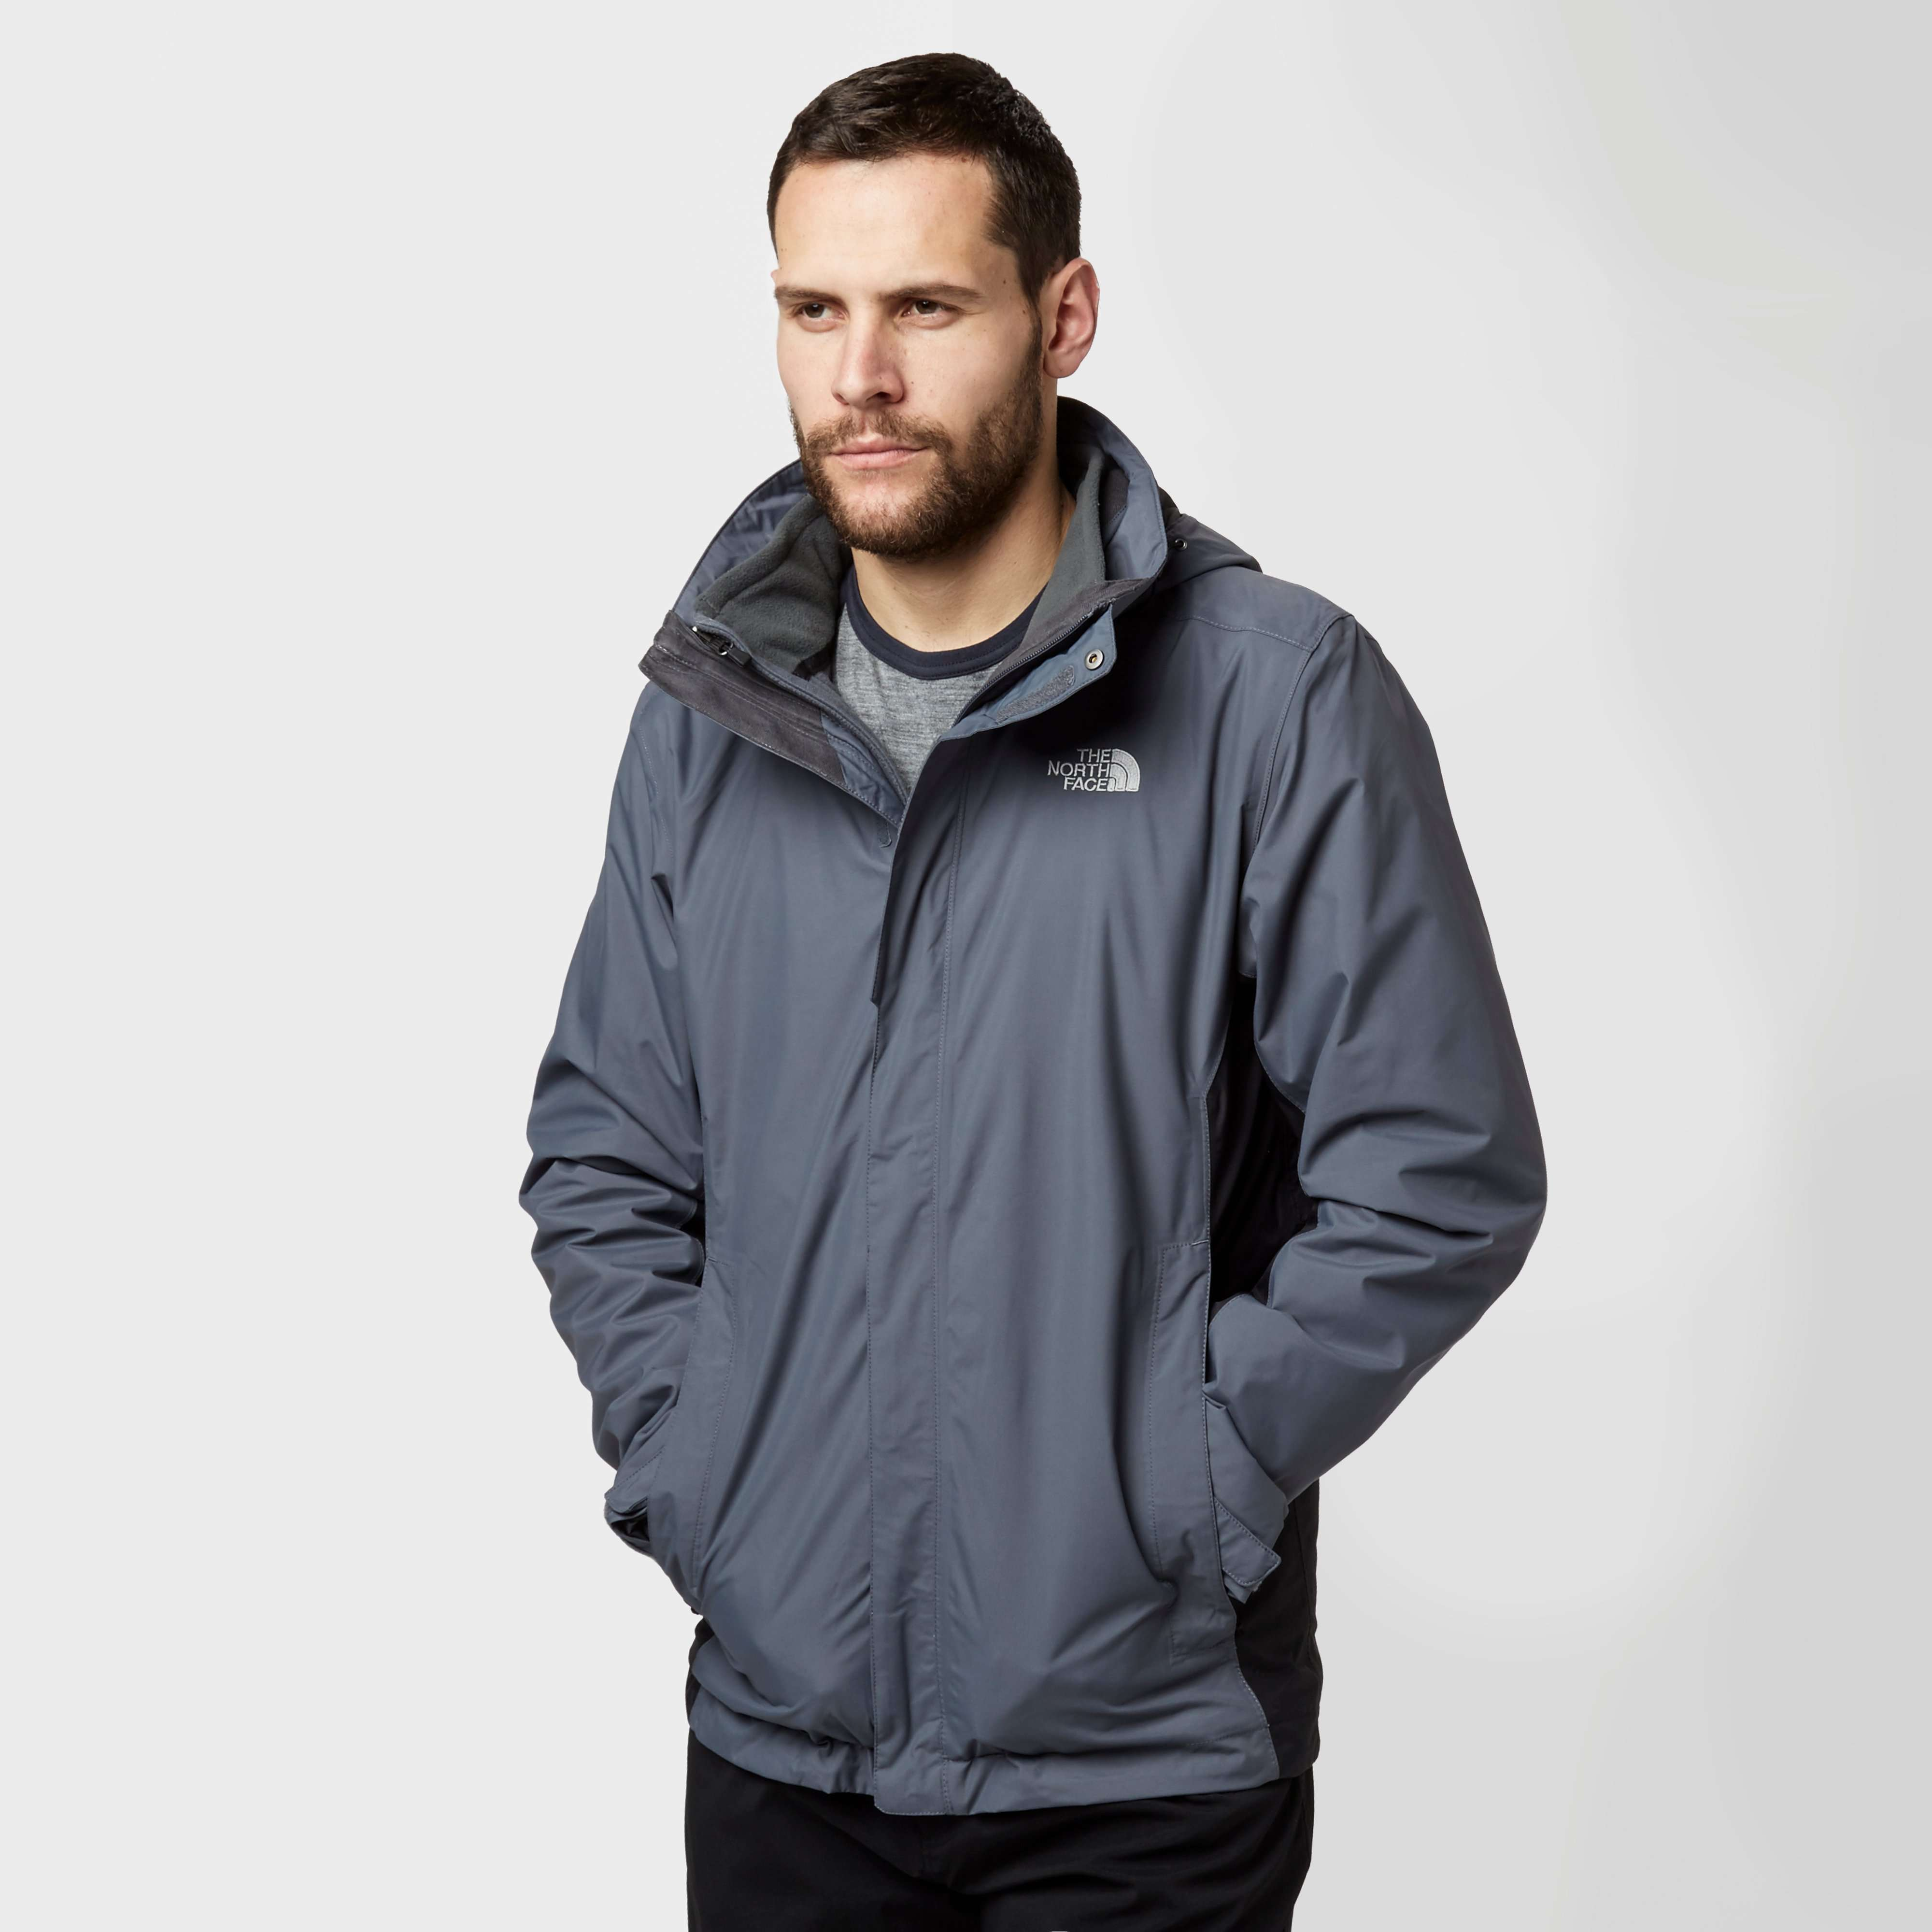 THE NORTH FACE Men's Evolution II Triclimate 3 in 1 Jacket